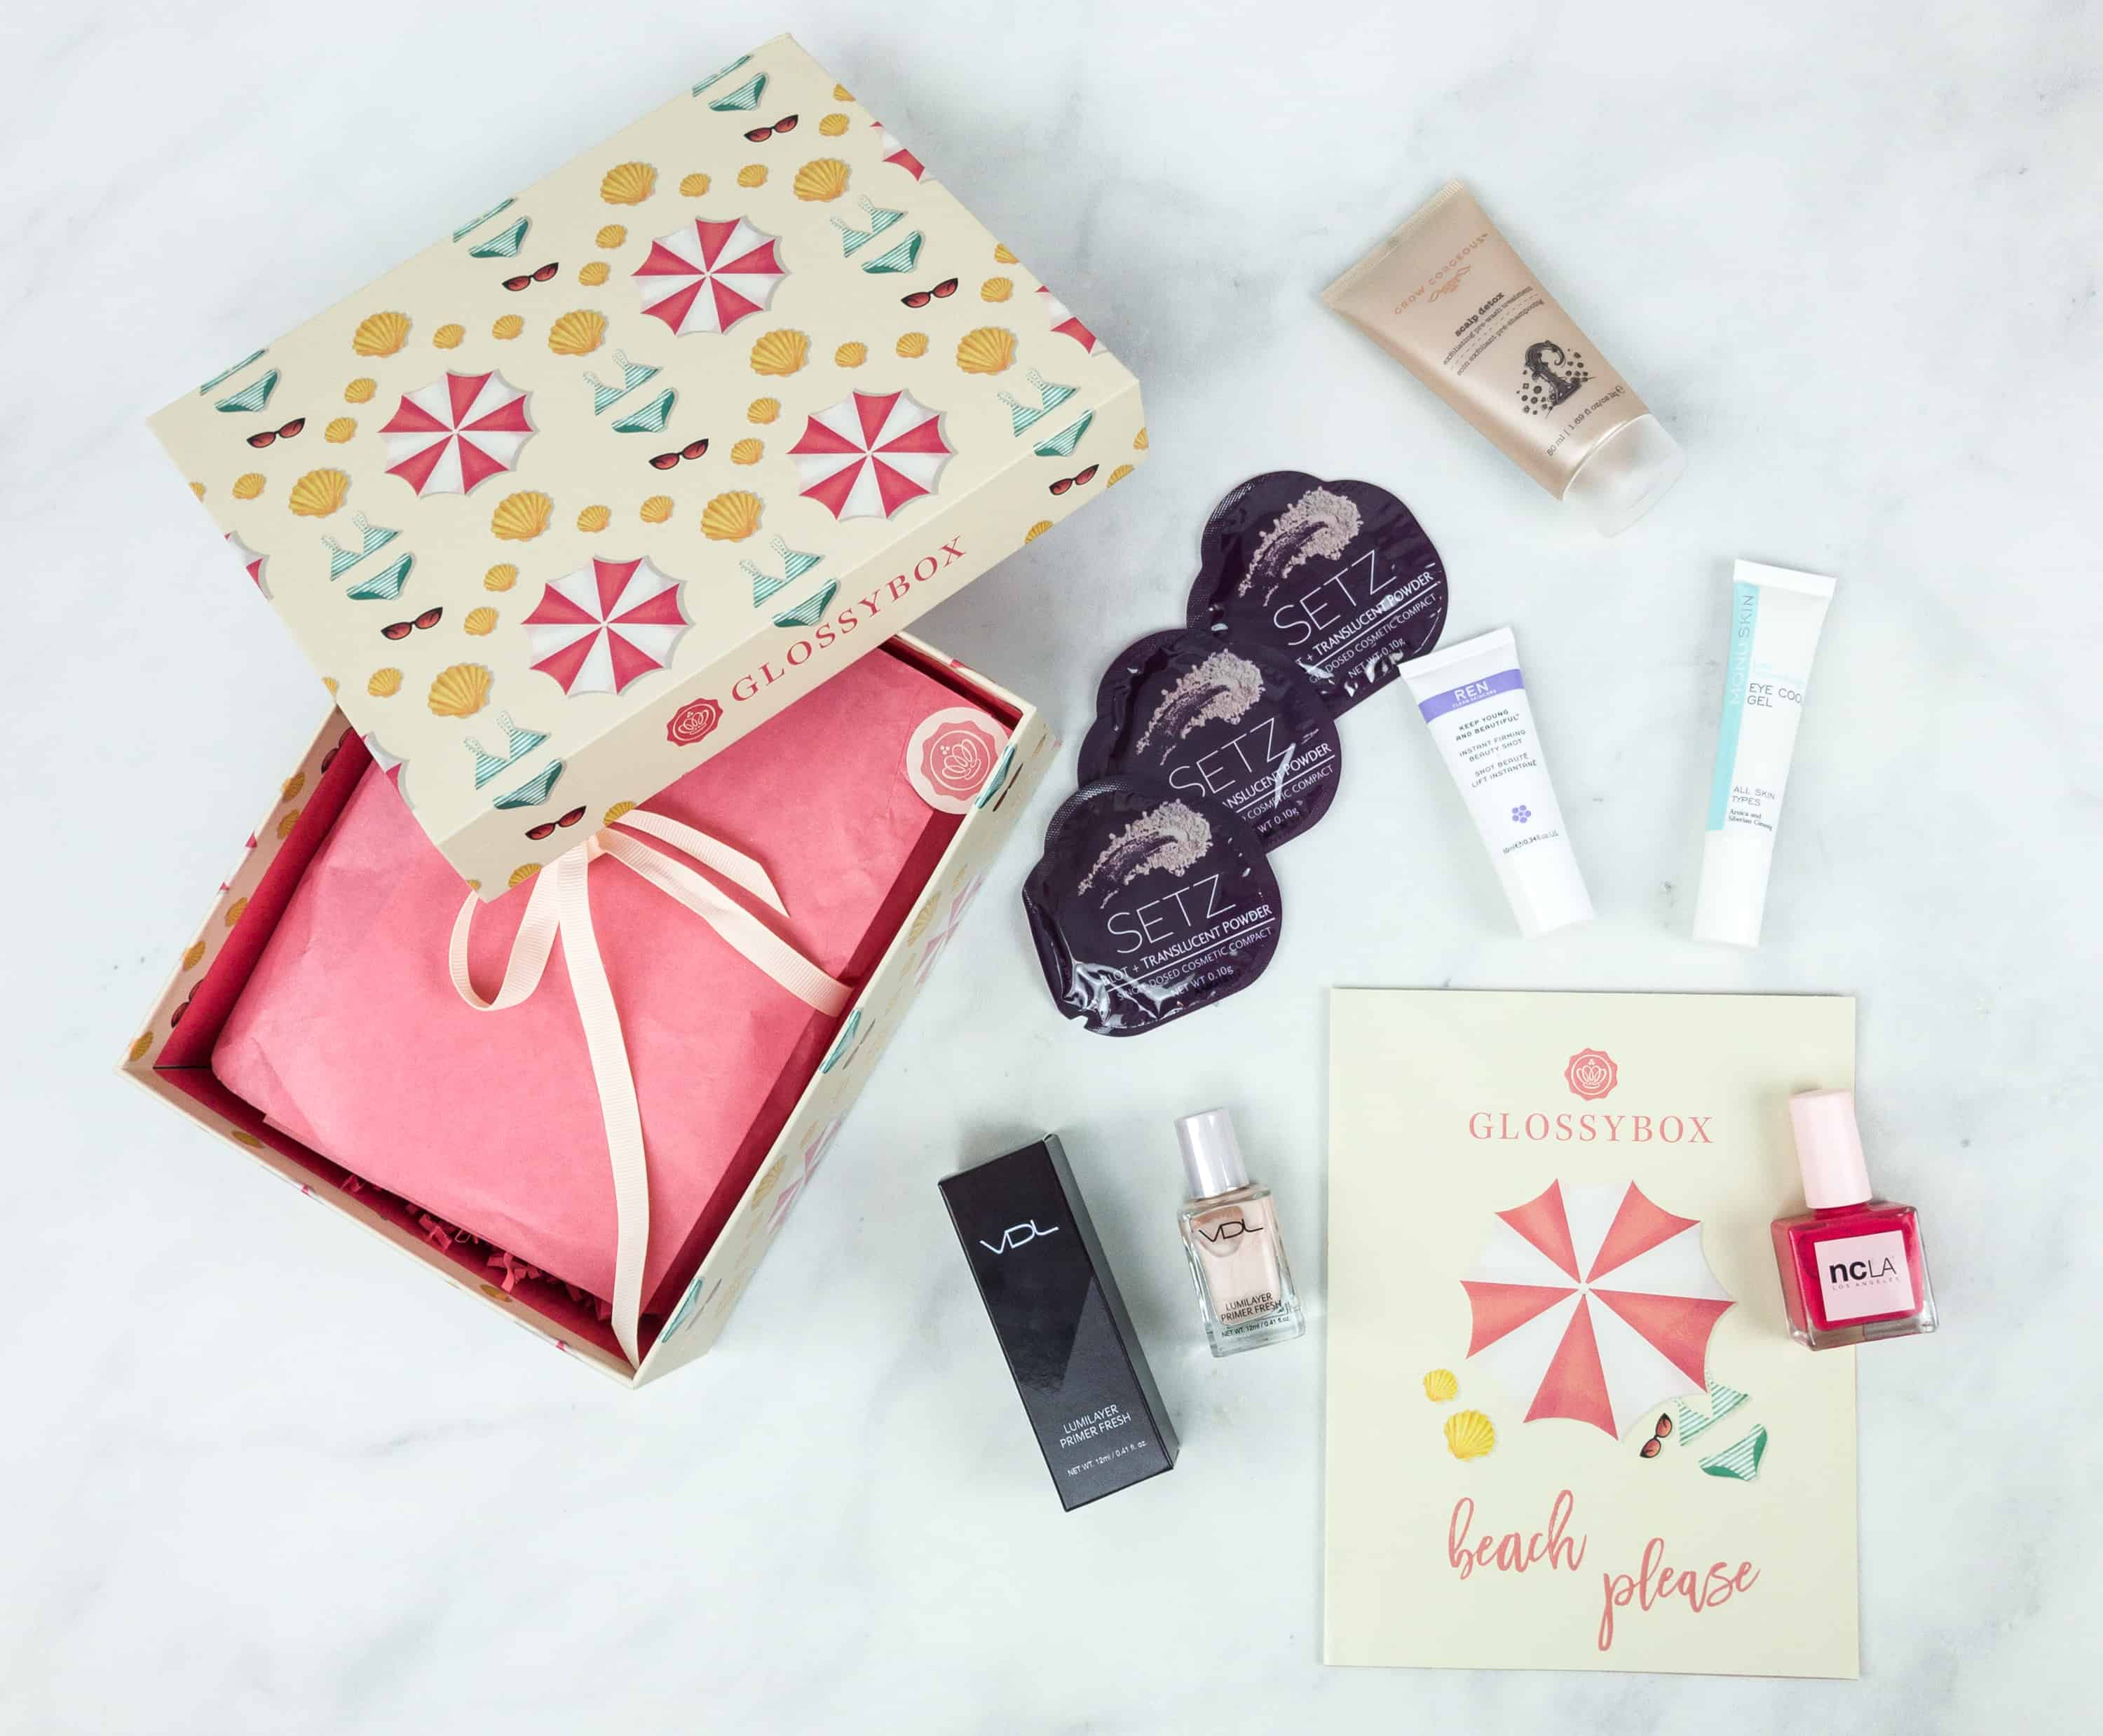 August 2018 GLOSSYBOX Subscription Box Review